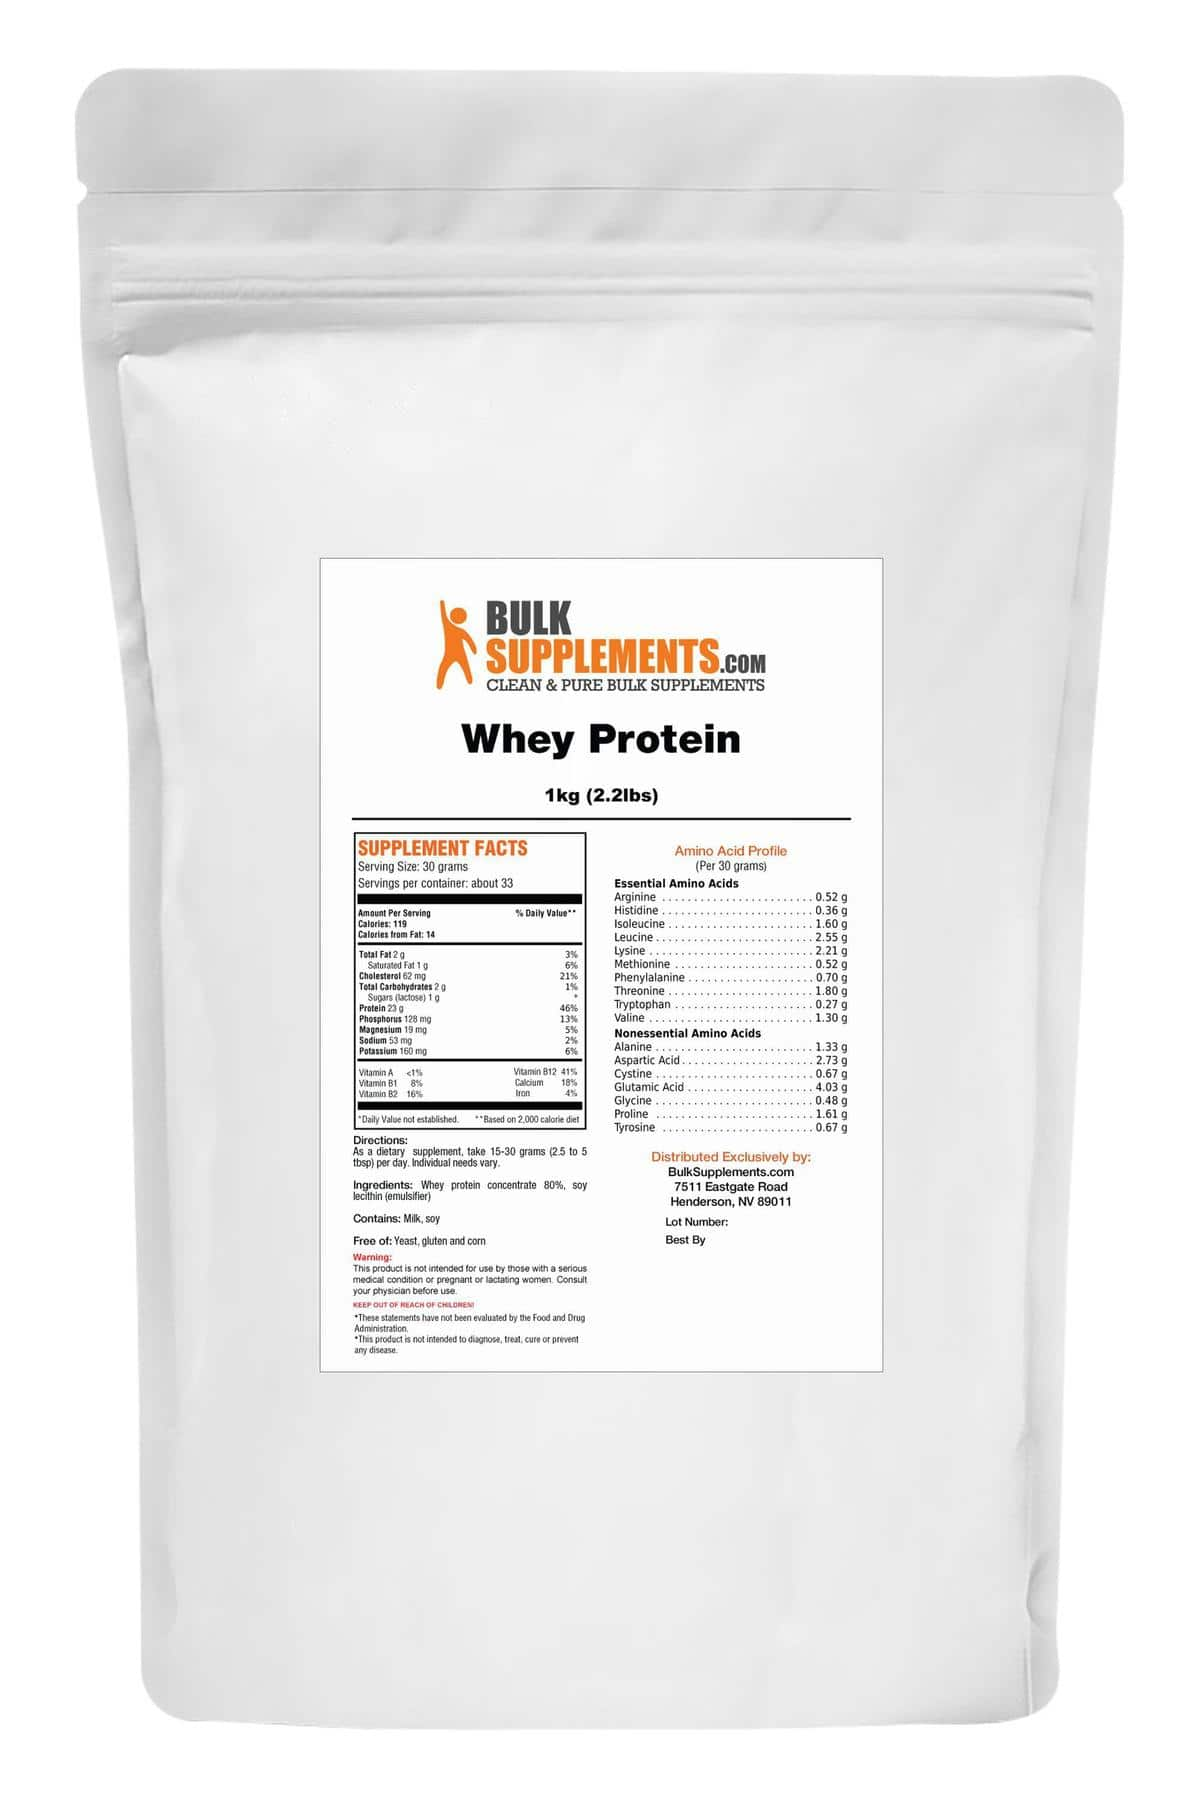 Whey Protein 5kg (11lbs) Unflavored - $49.96 w/ Free Shipping